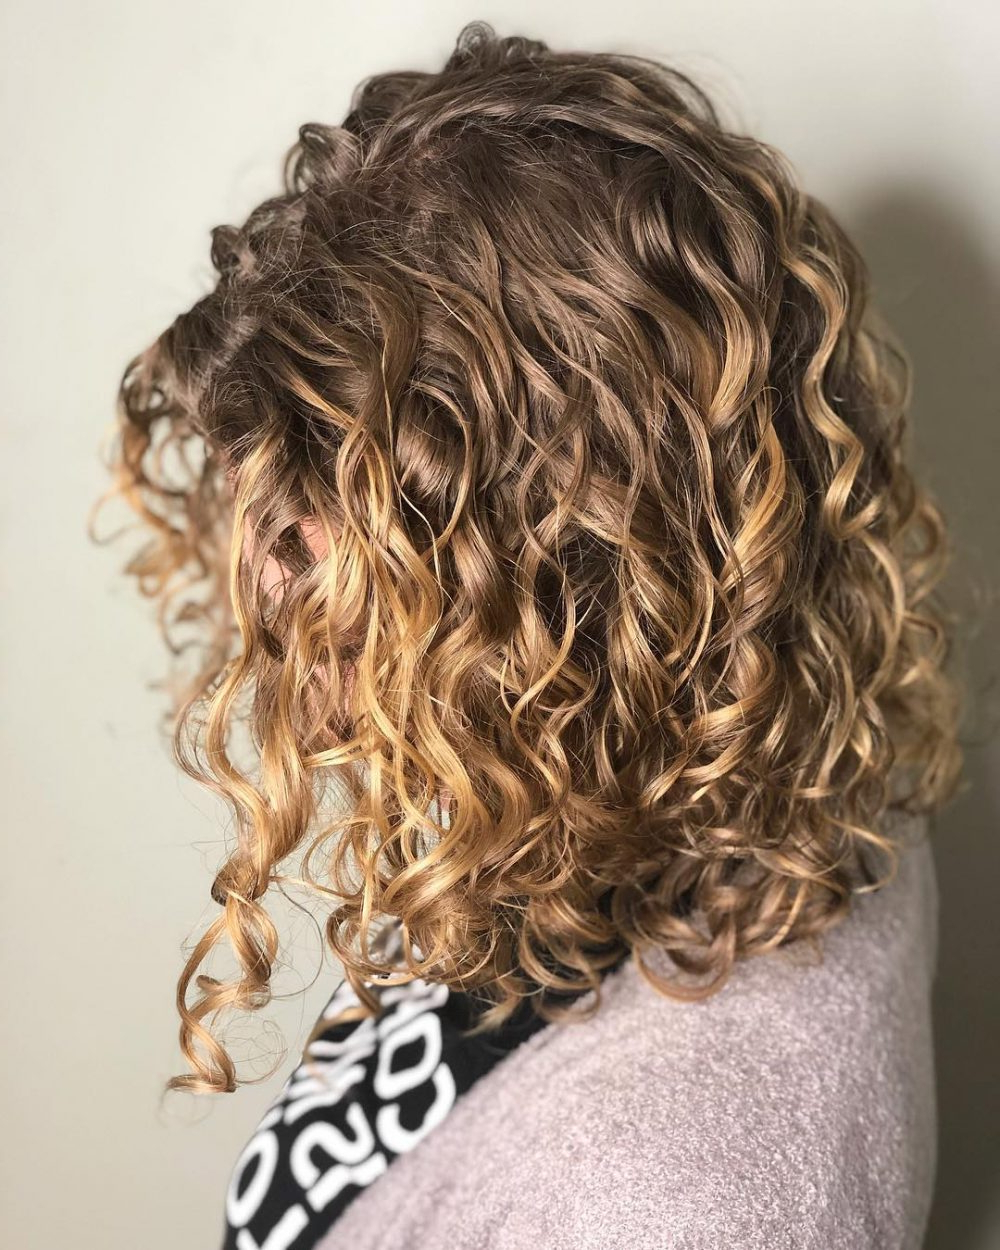 Newest Medium Messy Curly Haircuts For 30 Gorgeous Medium Length Curly Hairstyles For Women In  (View 14 of 20)